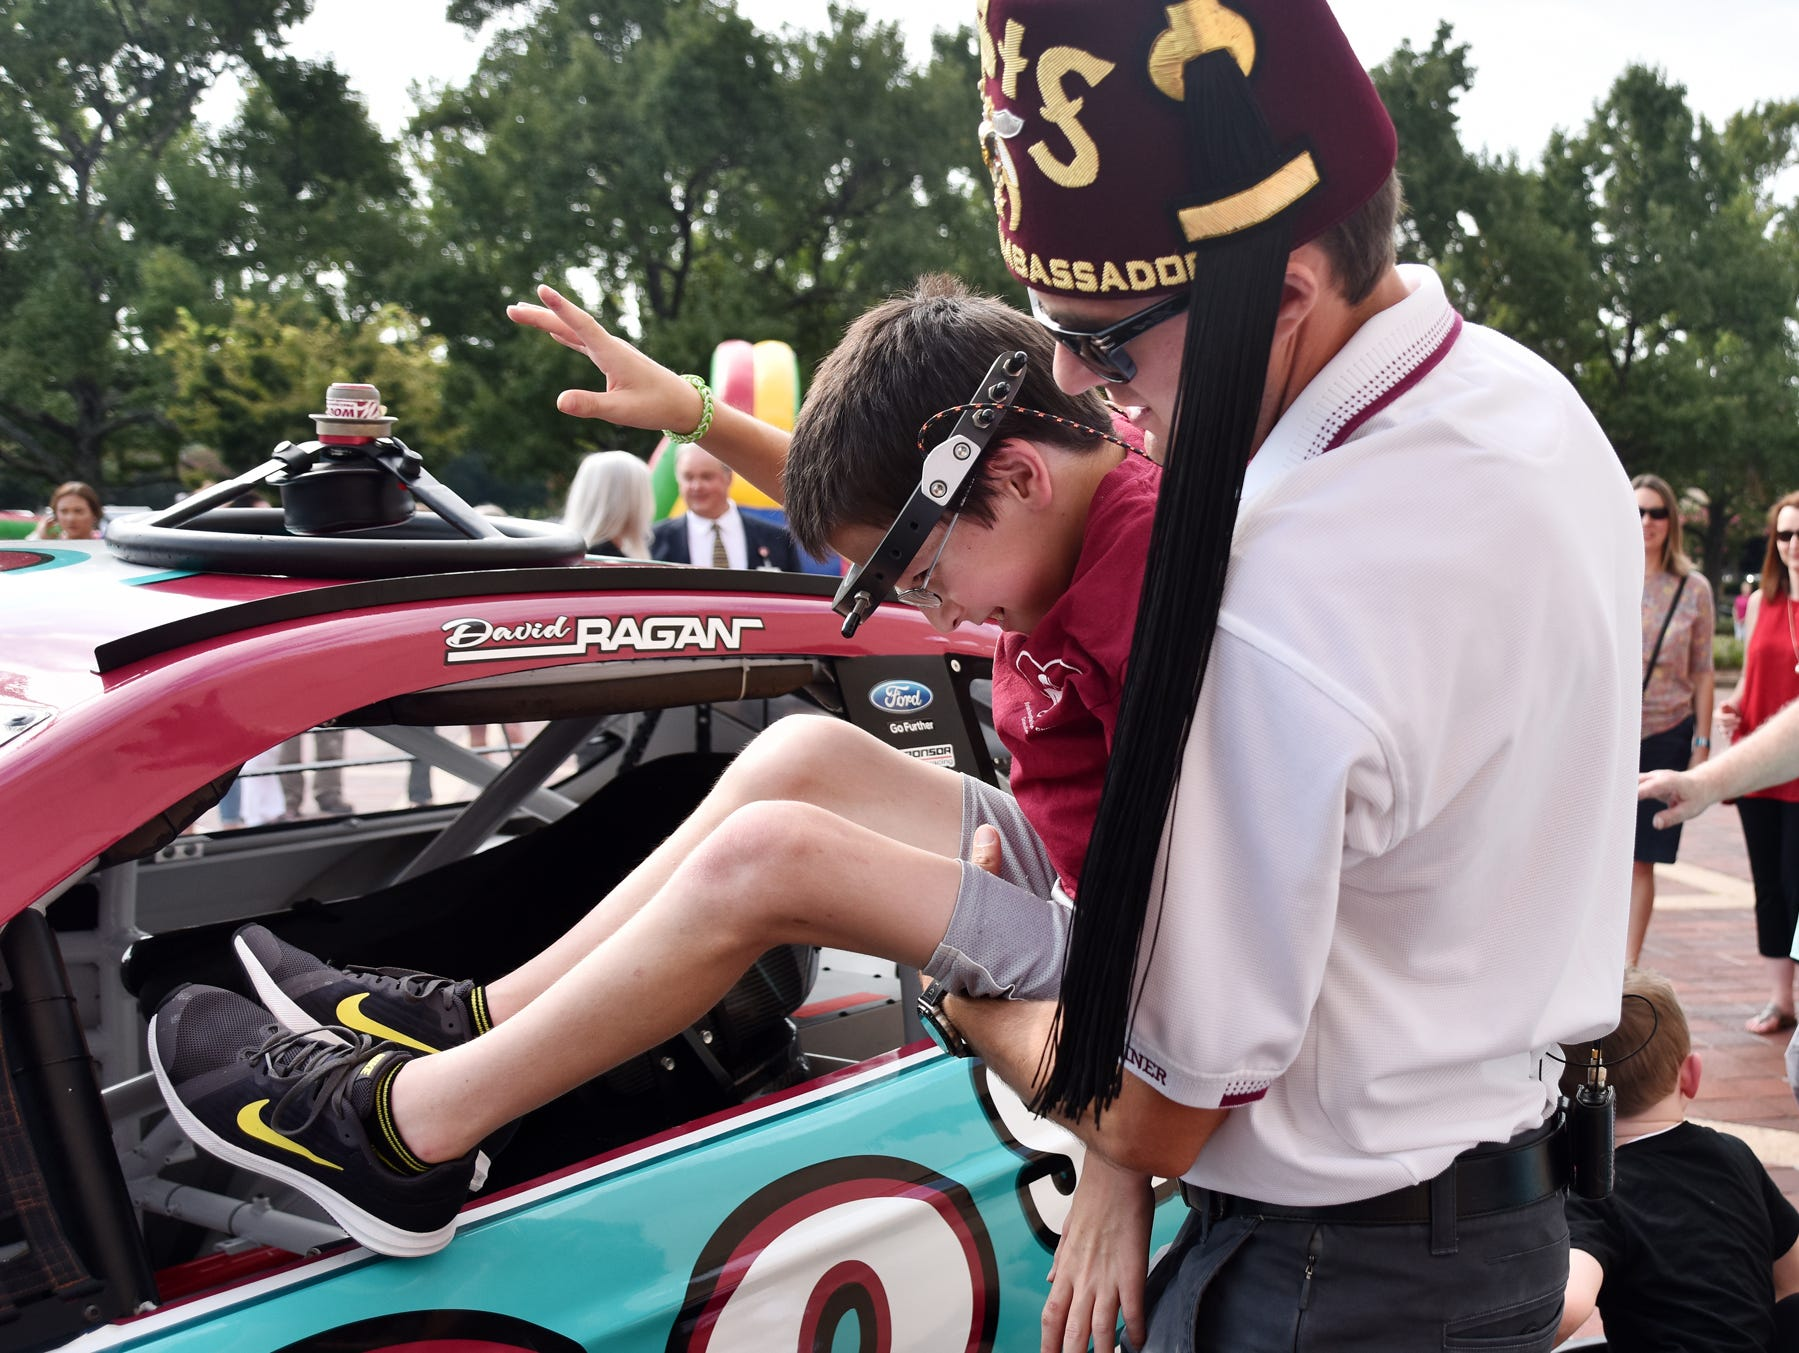 NASCAR driver David Ragan helps Grayson Lusk, 11, into a race car at the Shriners Hospital for Children in Greenville on August 15, 2018.